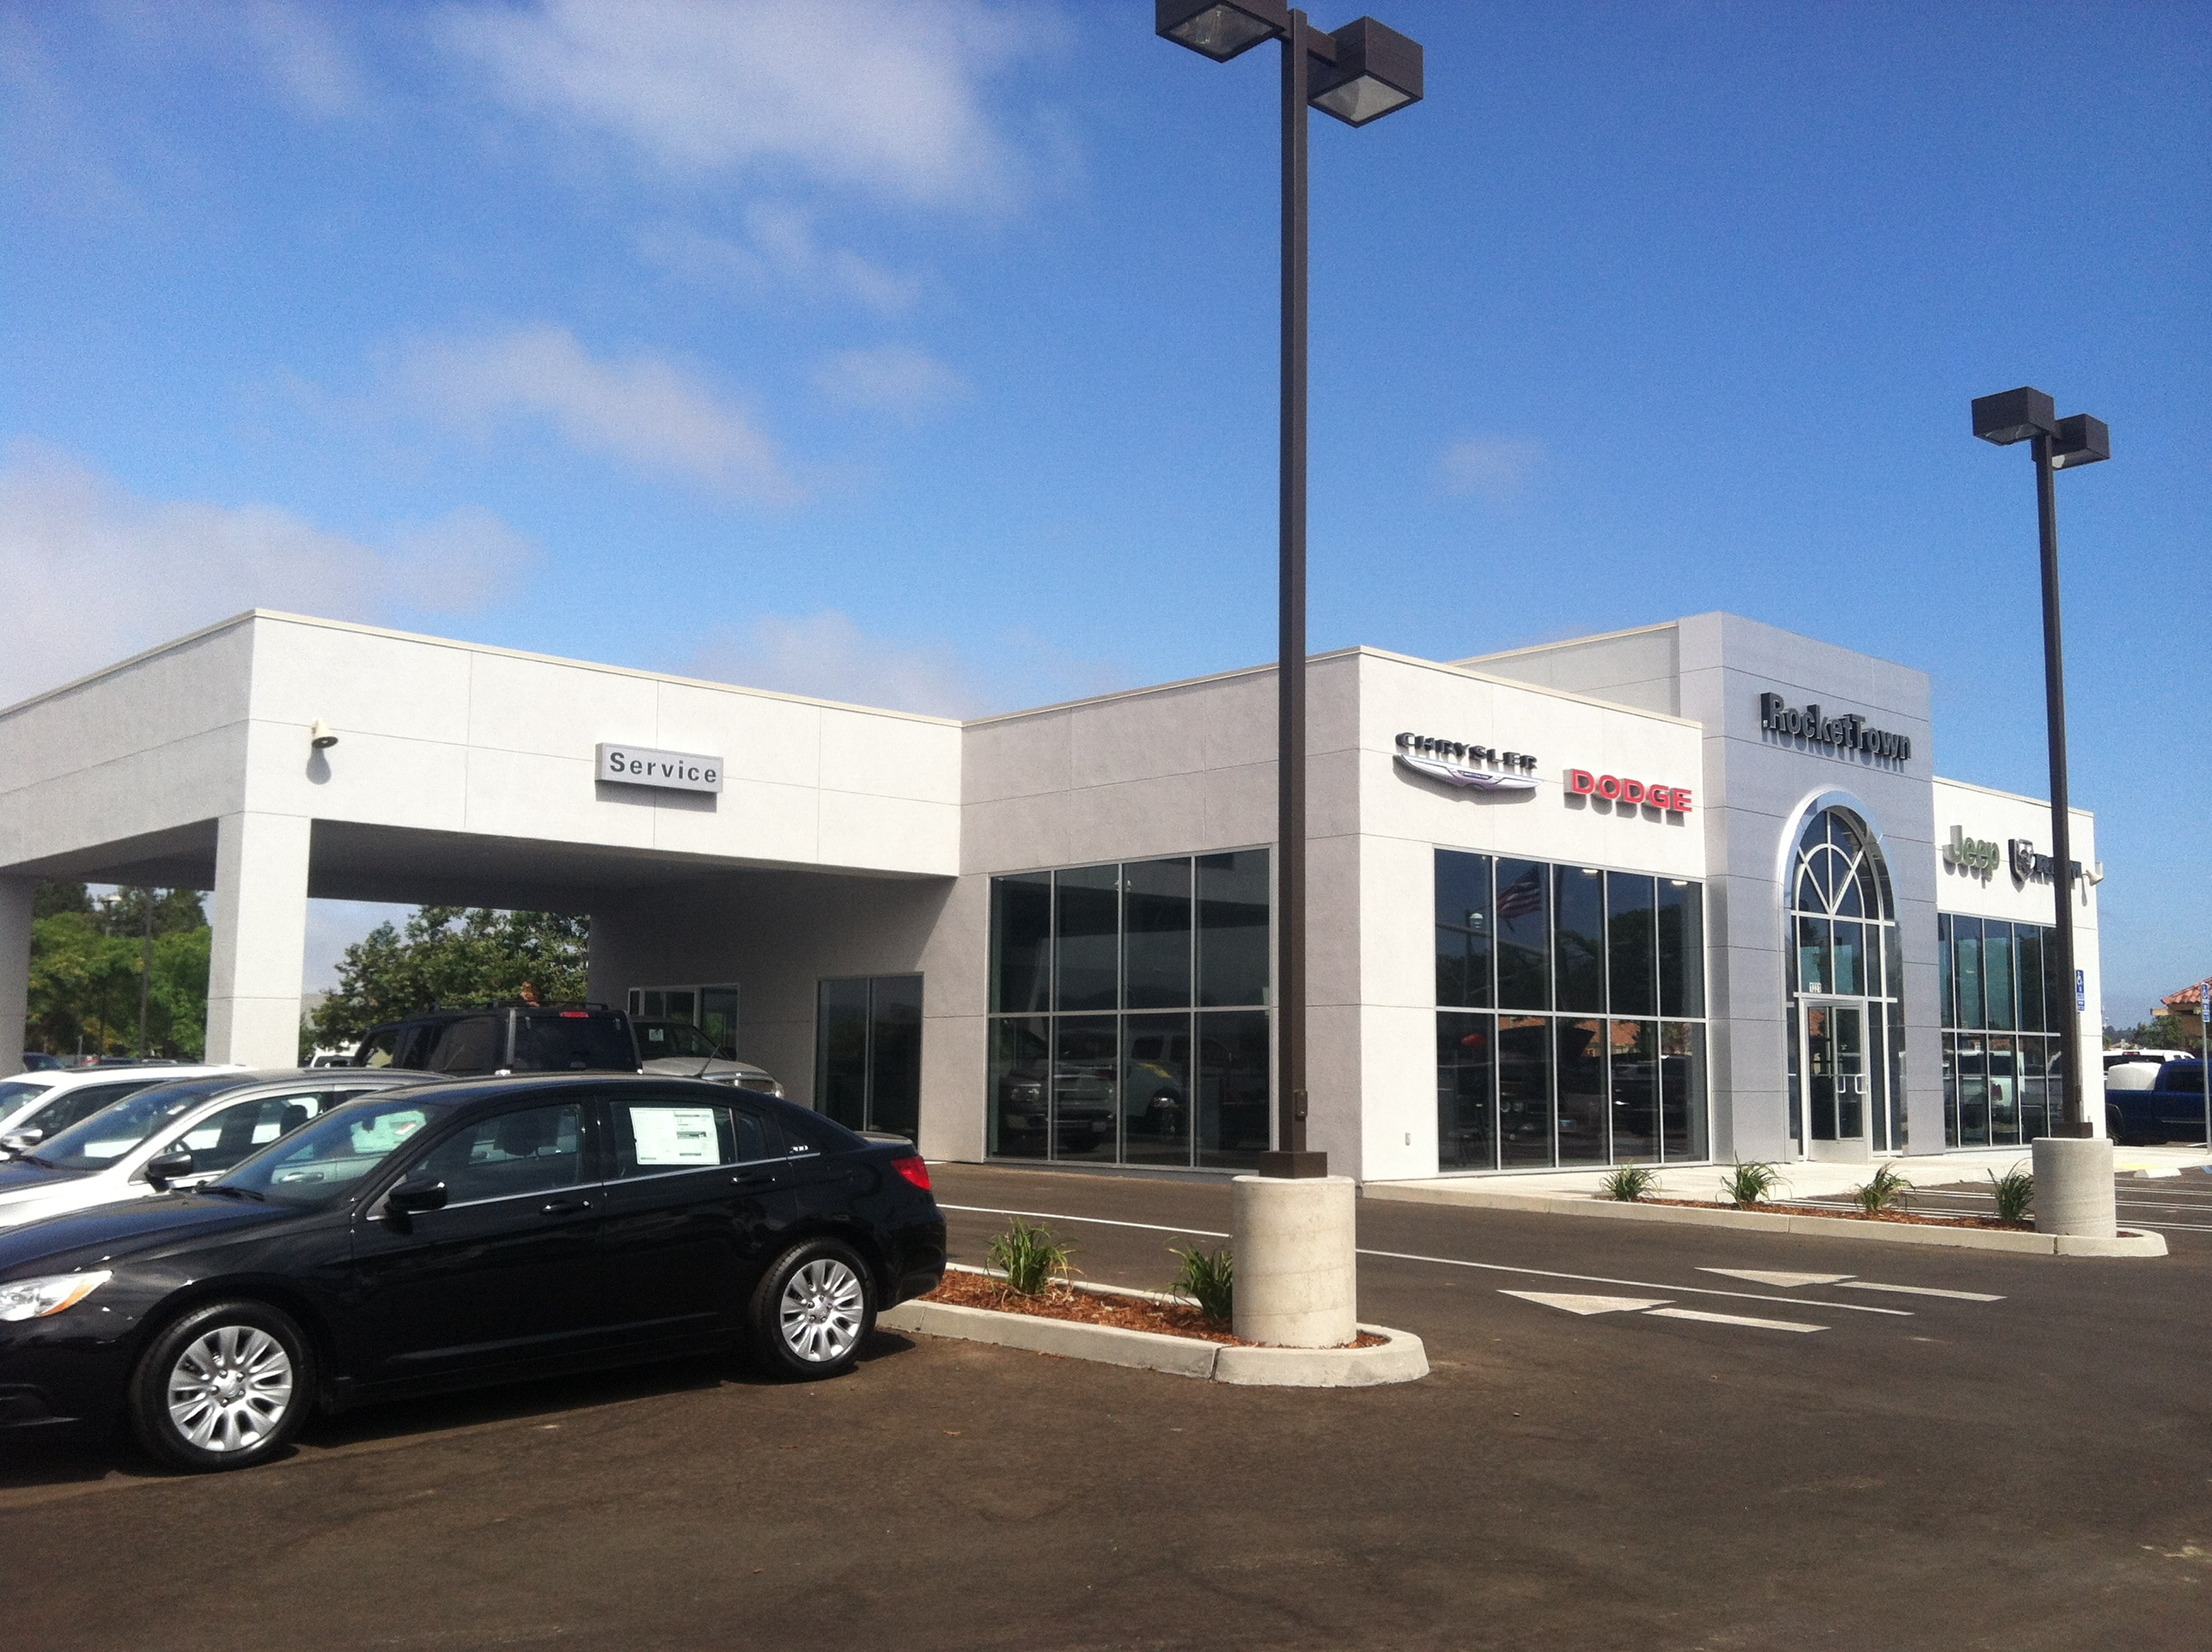 New RocketTown Chrysler Dodge Jeep RAM Facility In Lompoc CA